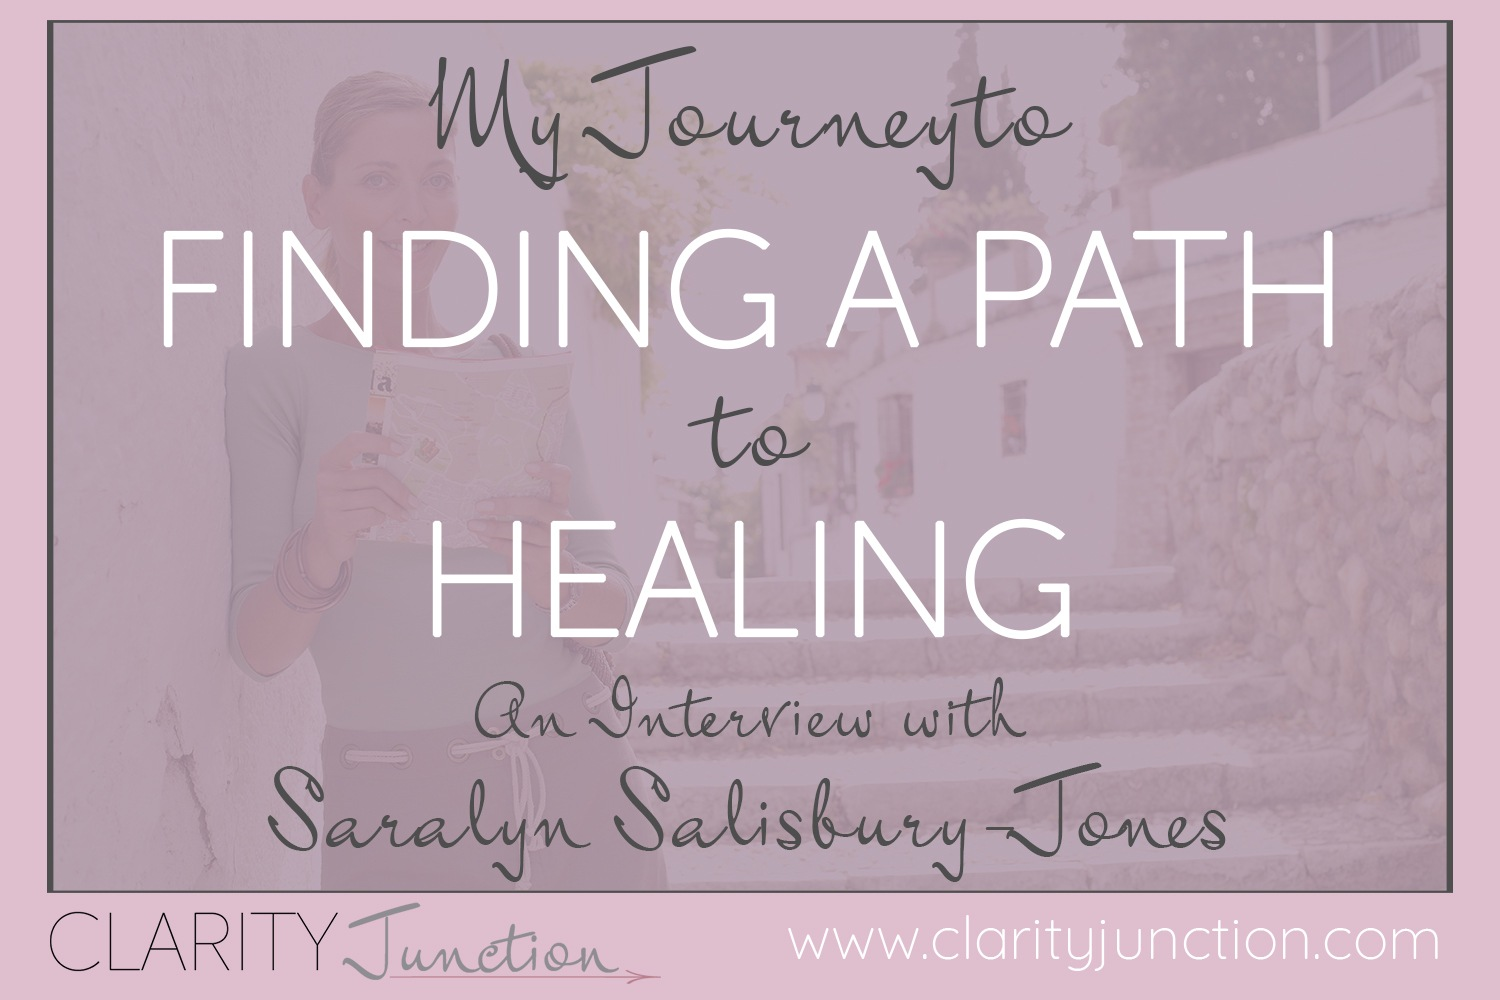 My Journey to Finding a Path to Healing